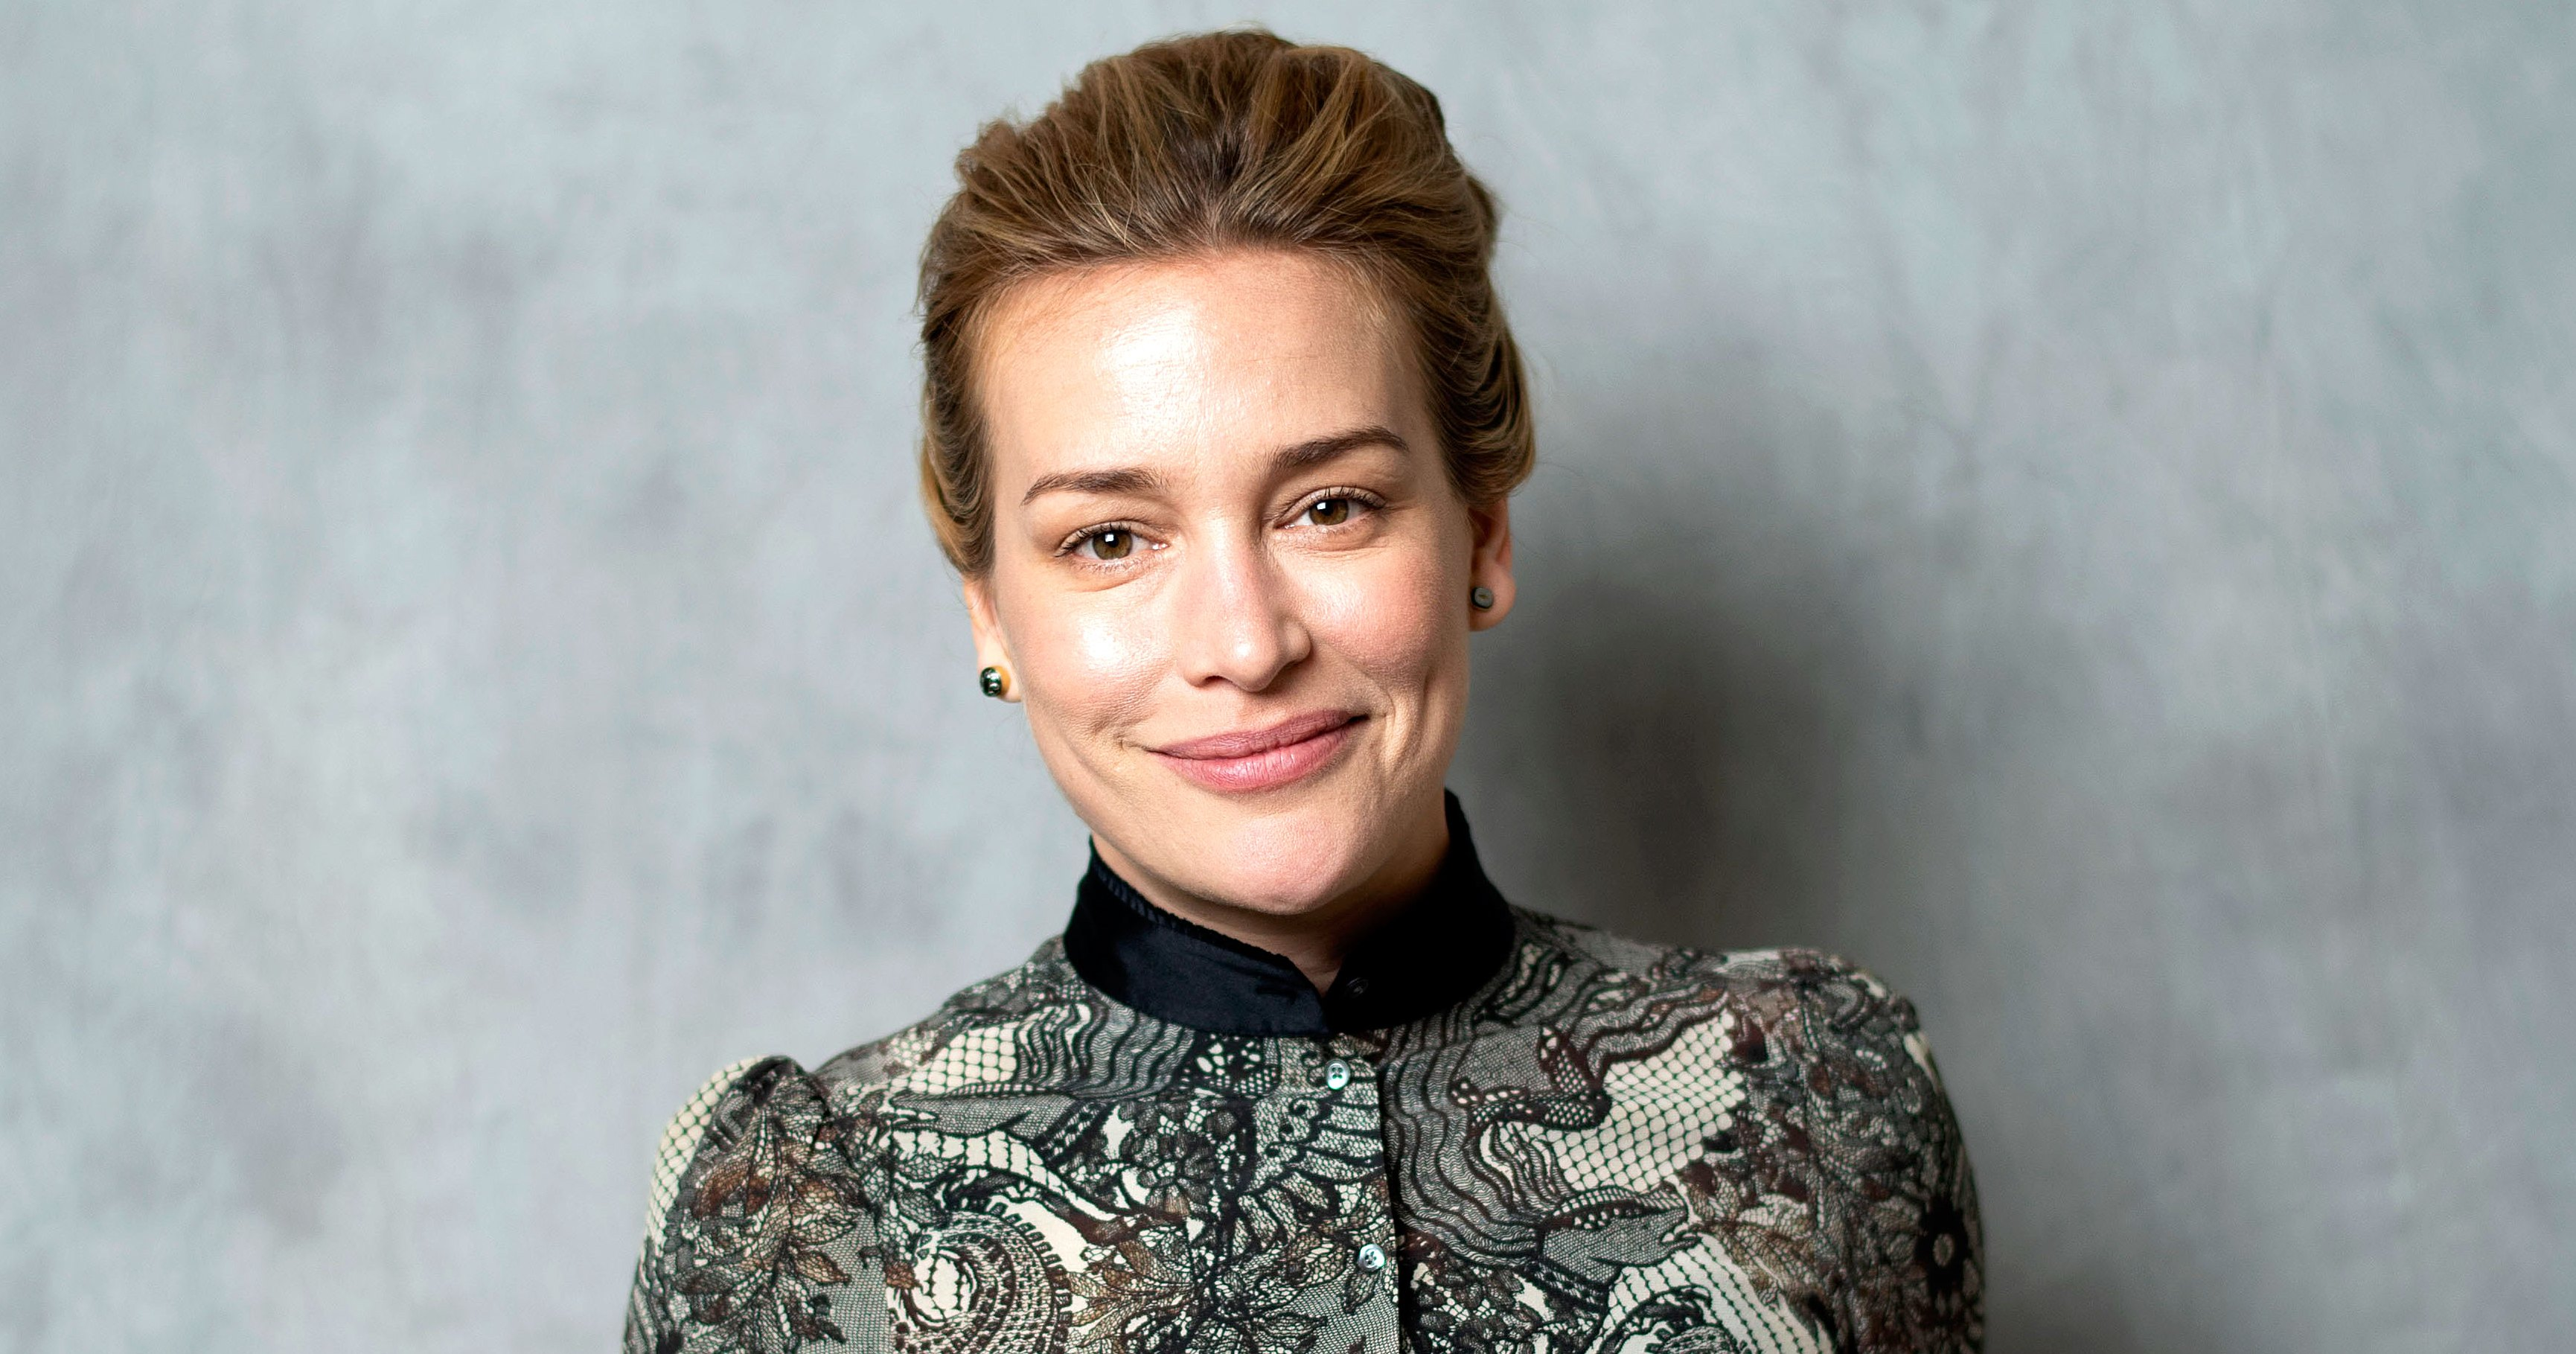 Piper Perabo: I Feel Like I 'Hit the Jackpot' With My Stepdaughter